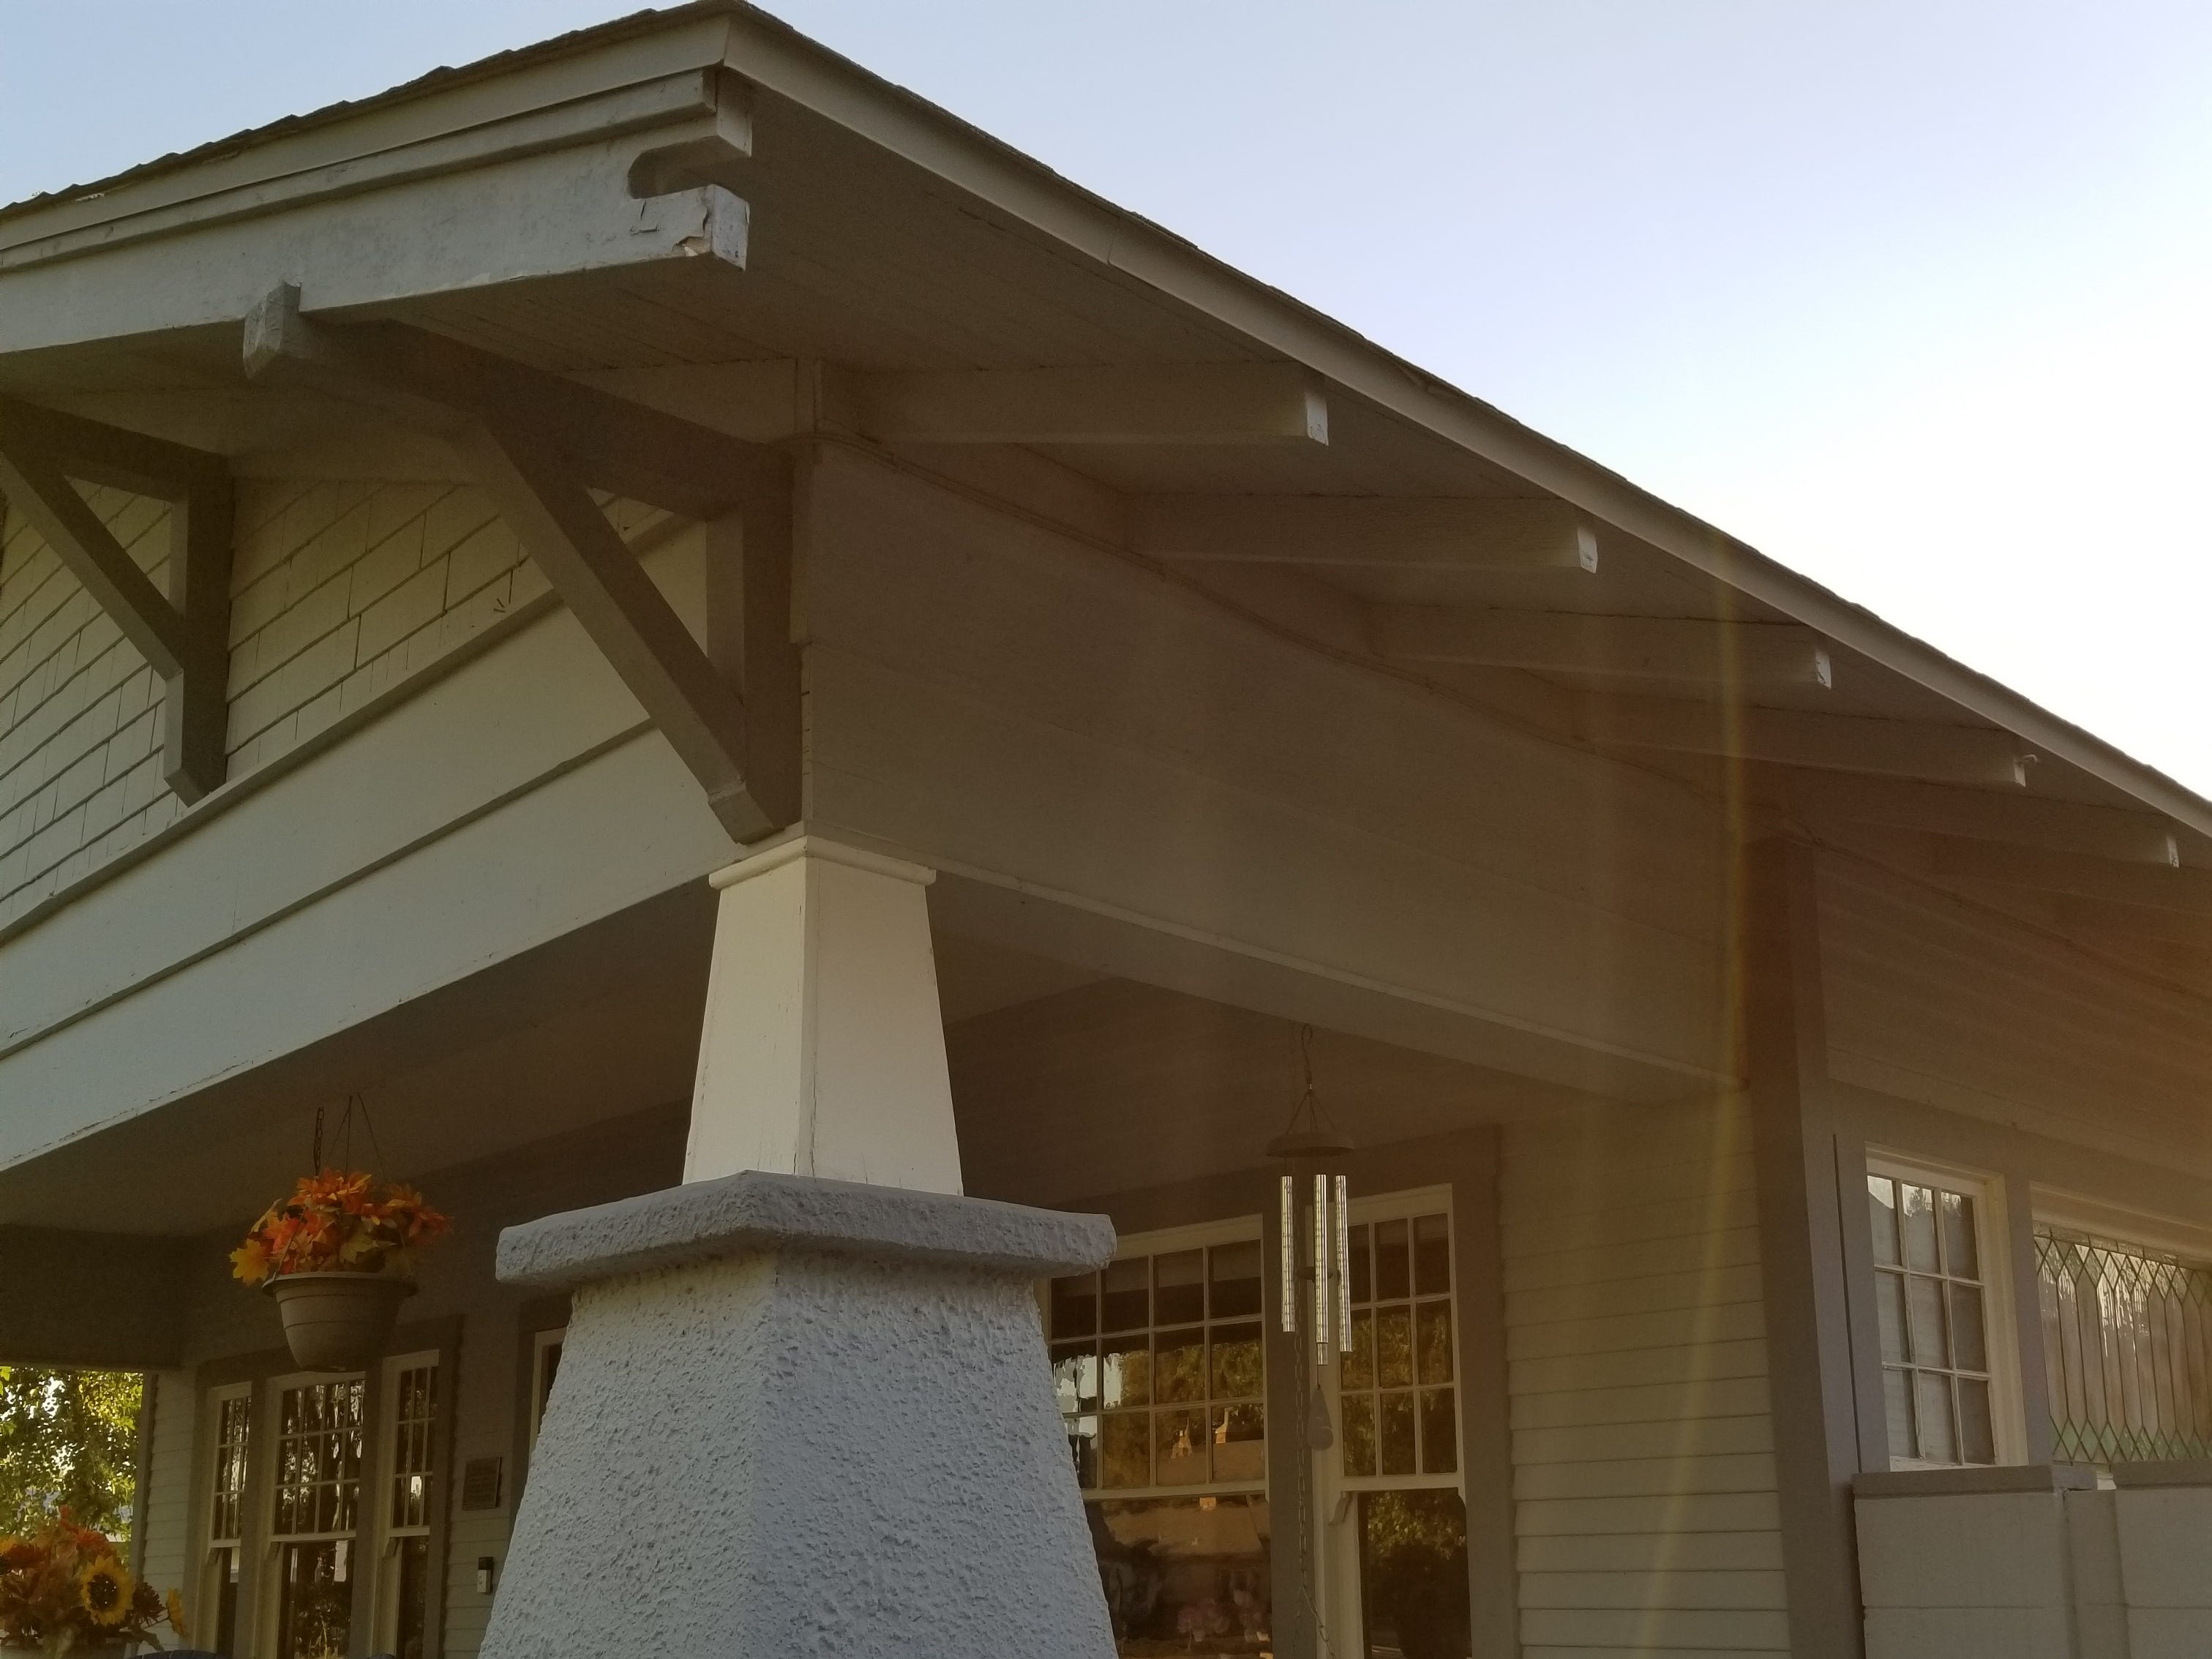 The builders' notch on the corner-end eaves acted a signature for the homebuilder.